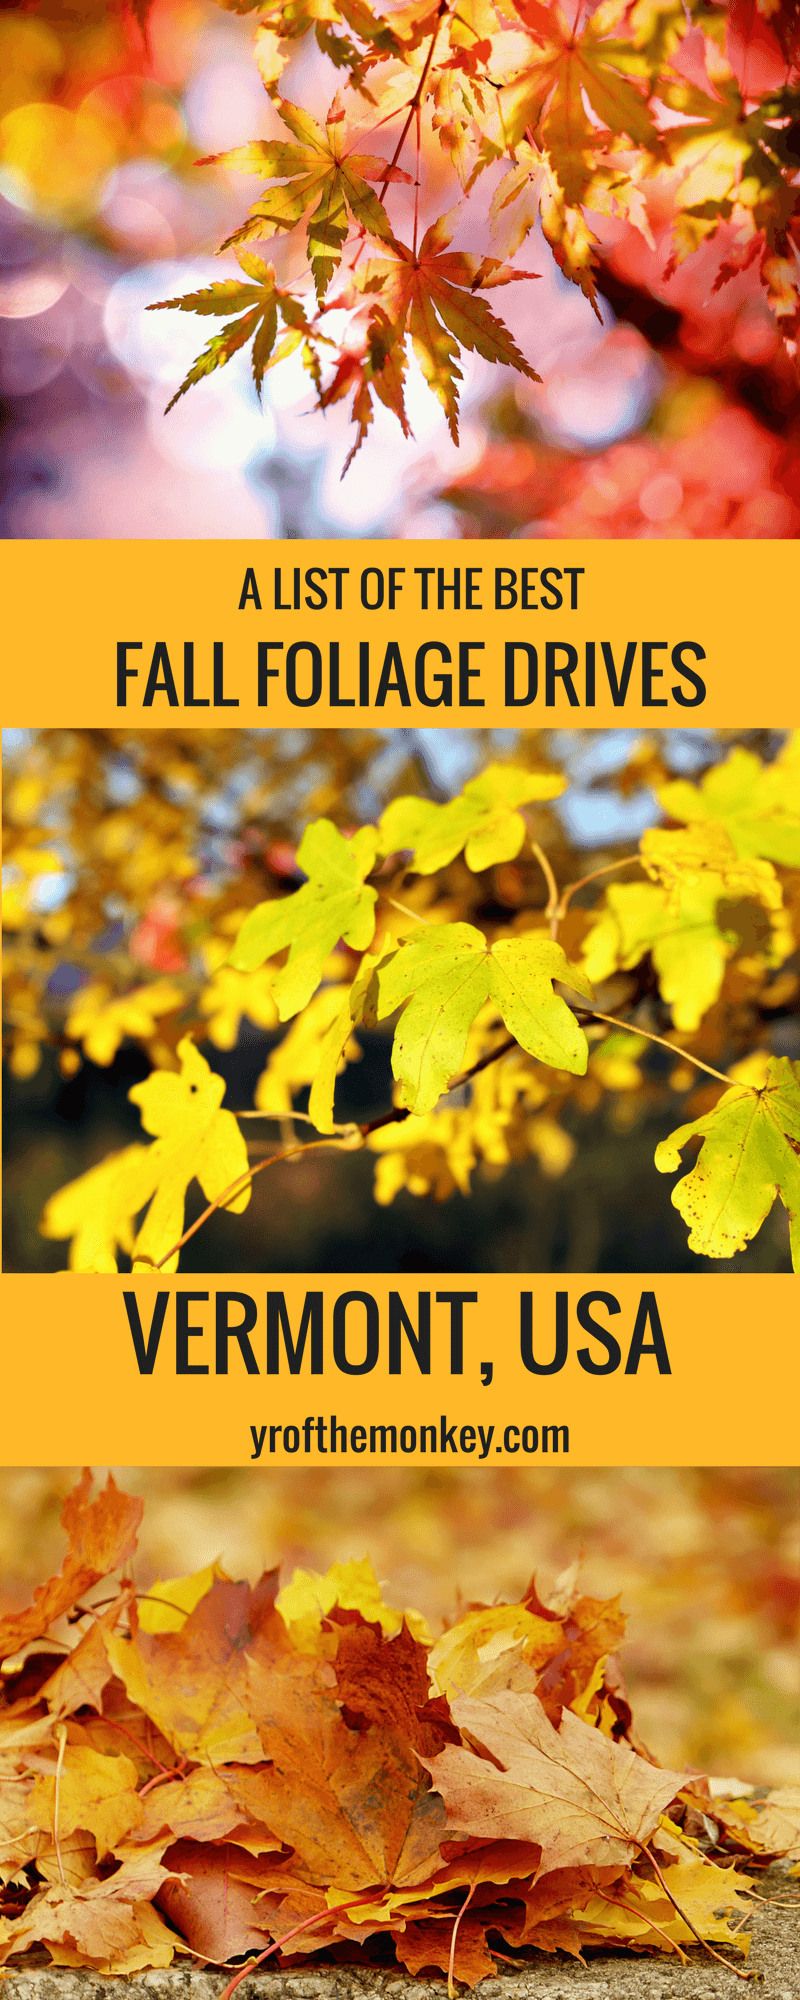 Vermont Fall Foliage drives features the best fall destination of USA, New england with best places to see fall foliage, fall foliage guide, routes to see fall colors and a handy fall foliage tracker link. Read about this ultimate USA fall destination to see dazzling fall colors. #vermont #USA #fallfoliage #fallcolors #fallvacation #foliageroutes #roadtrip #eastcoast #newengland